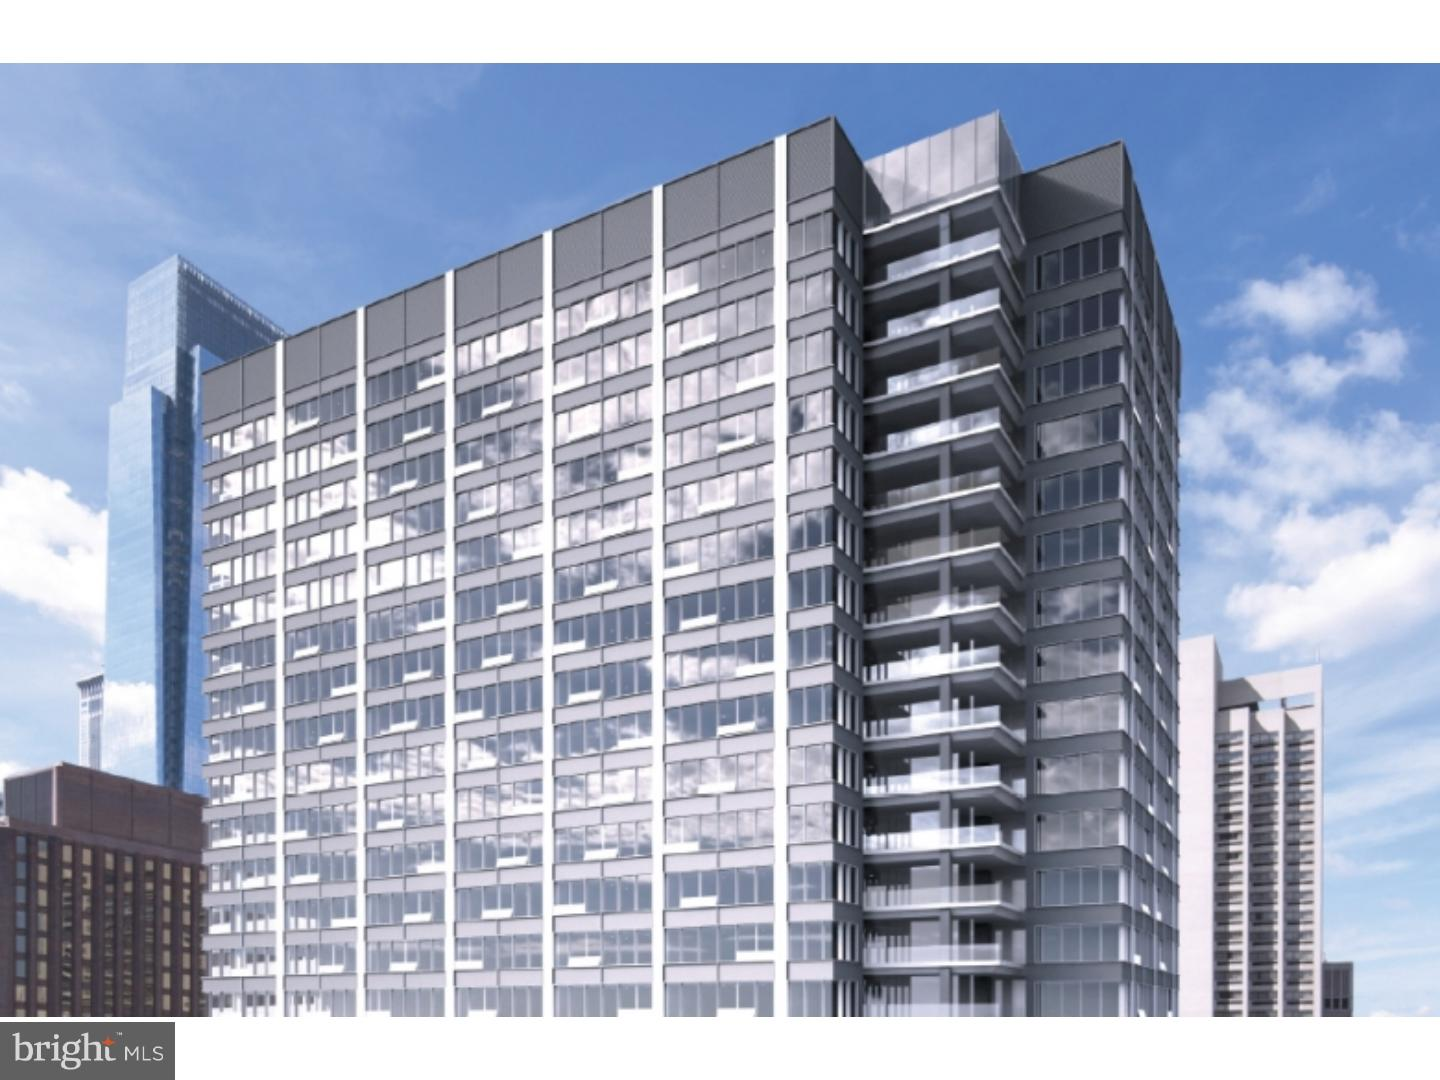 FRANKLIN TOWER! Extra Large! Extra Amazing!! Extra Large Living Space!!!! Extra Large Closets!!!!!This new ALL GLASS apartment building boasts, GARAGE PARKING, and one of the following on EVERY FLOOR: gyms, community rooms, business centers, screening rooms, and spin rooms. There is also a BASKETBALL COURT with STADIUM SEATING, DOG SPA and private garden. The ROOF DECK is the LARGEST in PHILADELPHIA, with FLAT SCREEN TV's, and has 360 degree AMAZING VIEWS!!!!!!!!! This must see to believe 2 bedroom, 2 bath apartment is off the charts, and has the most perfect layout. Enjoy an all open living, and dining area. Awesome kitchen with huge breakfast bar, custom cabinetry, and stainless steel appliances. Each bedroom boasts oversized stunning bathrooms both with European tile fixtures. The light hardwood floors that run throughout this residence, and high ceilings, add to how amazing this residence truly is. This LIFE STYLE property just minutes from fantastic dining, entertainment, Hahnemann hospital, 95, 676+ Kelly Drive, the Barnes and Wholefoods Market. Incentives For a limited time: 4 weeks free on a 13 month lease, waived application fee, waived amenity fee and $500 deposit.  Parking available for additional fee. GOT STUFF? Your own designated storage space for 1 year. Limited time only! Photo's are of model unit.